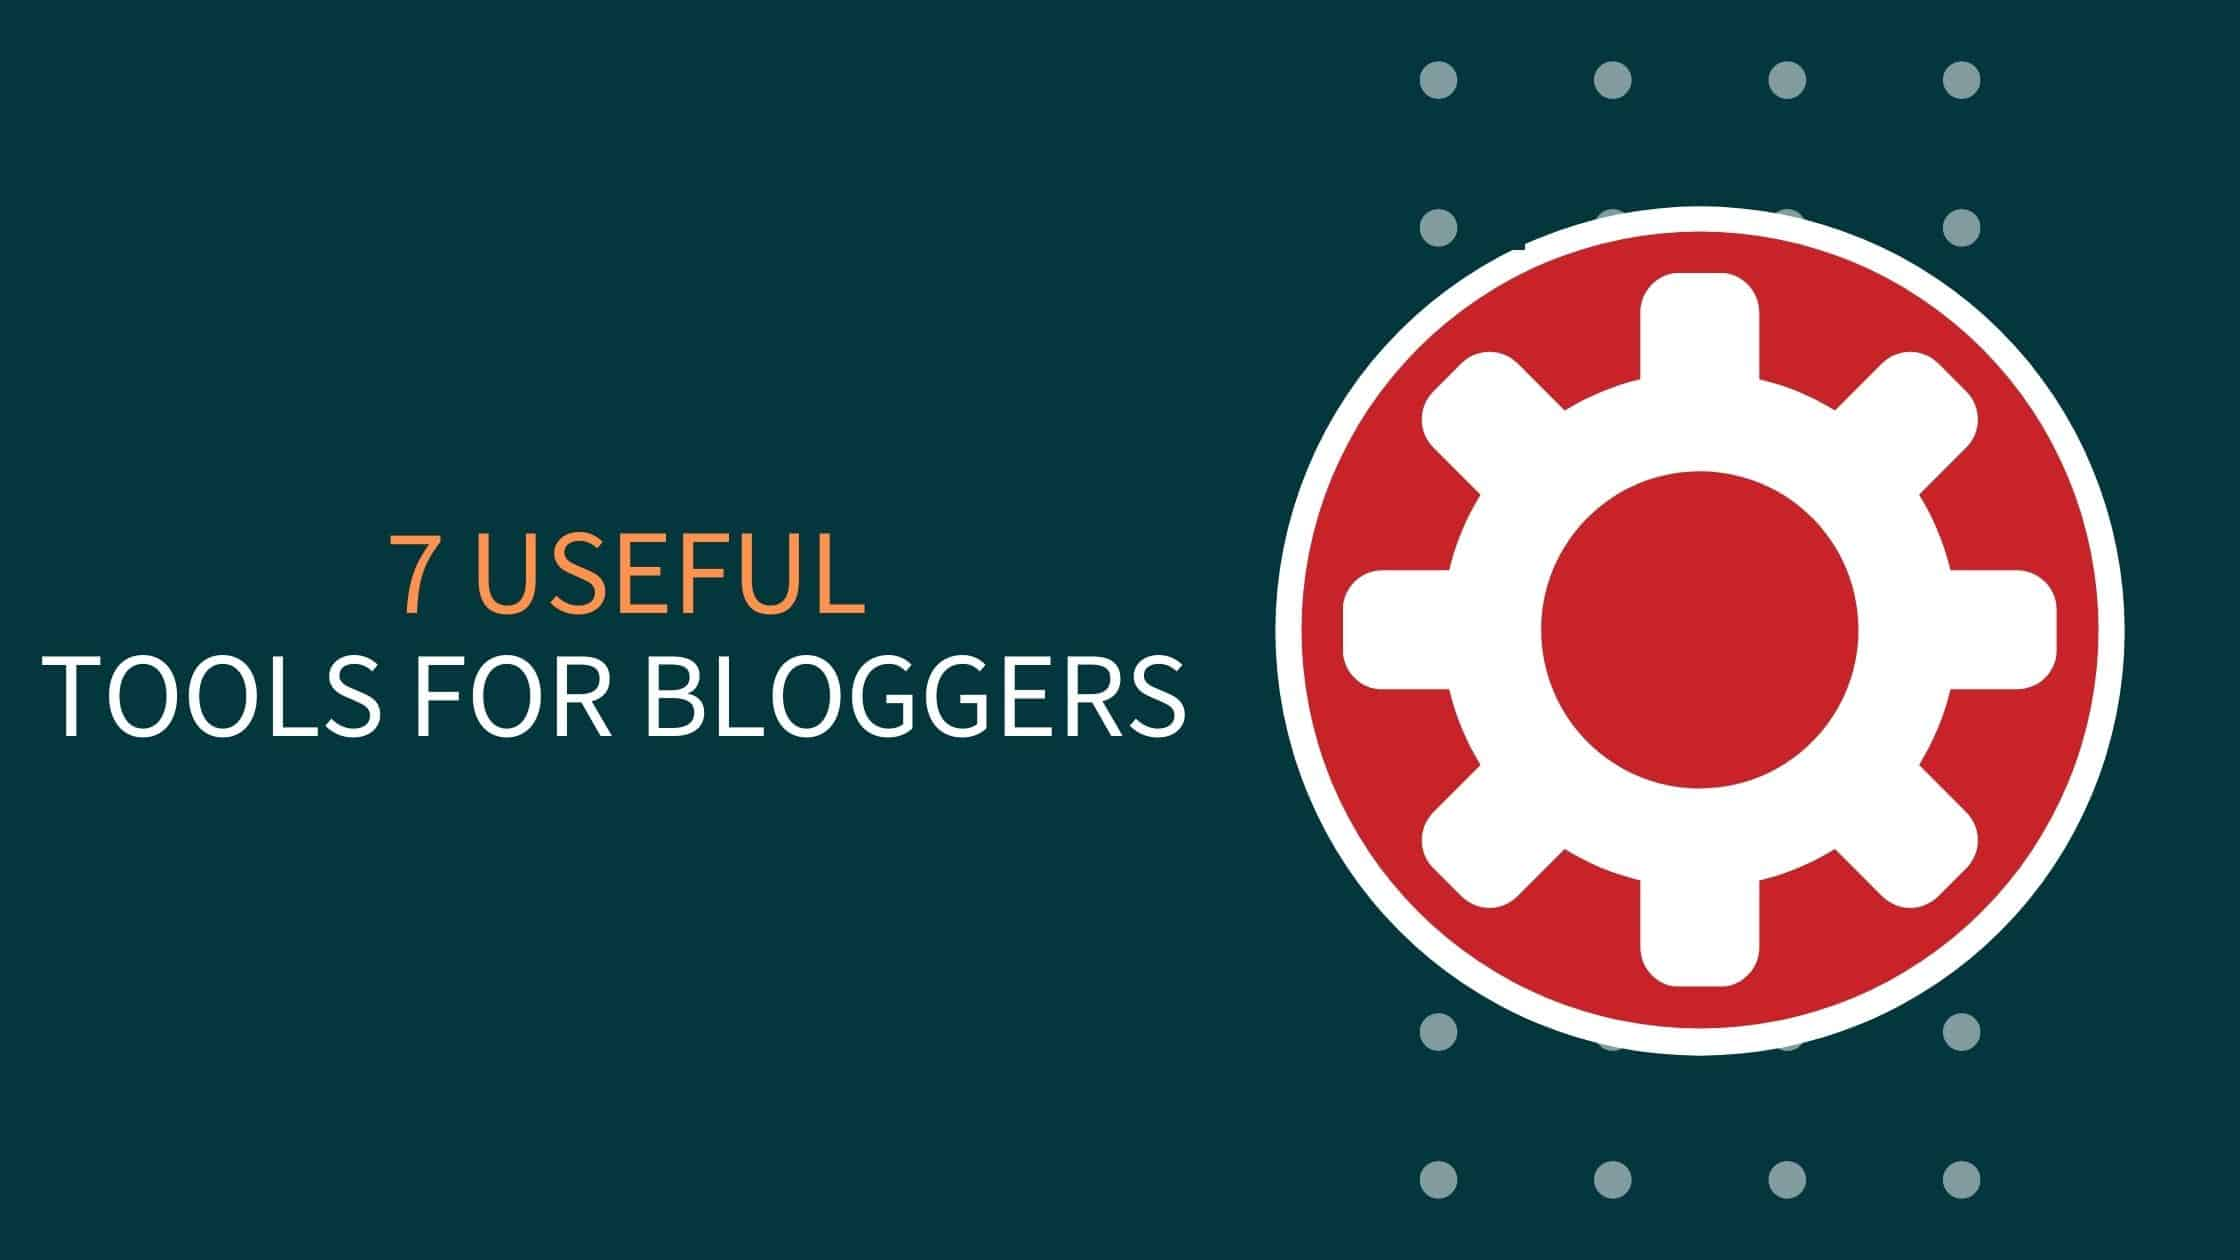 7 Most Useful Tools For Bloggers